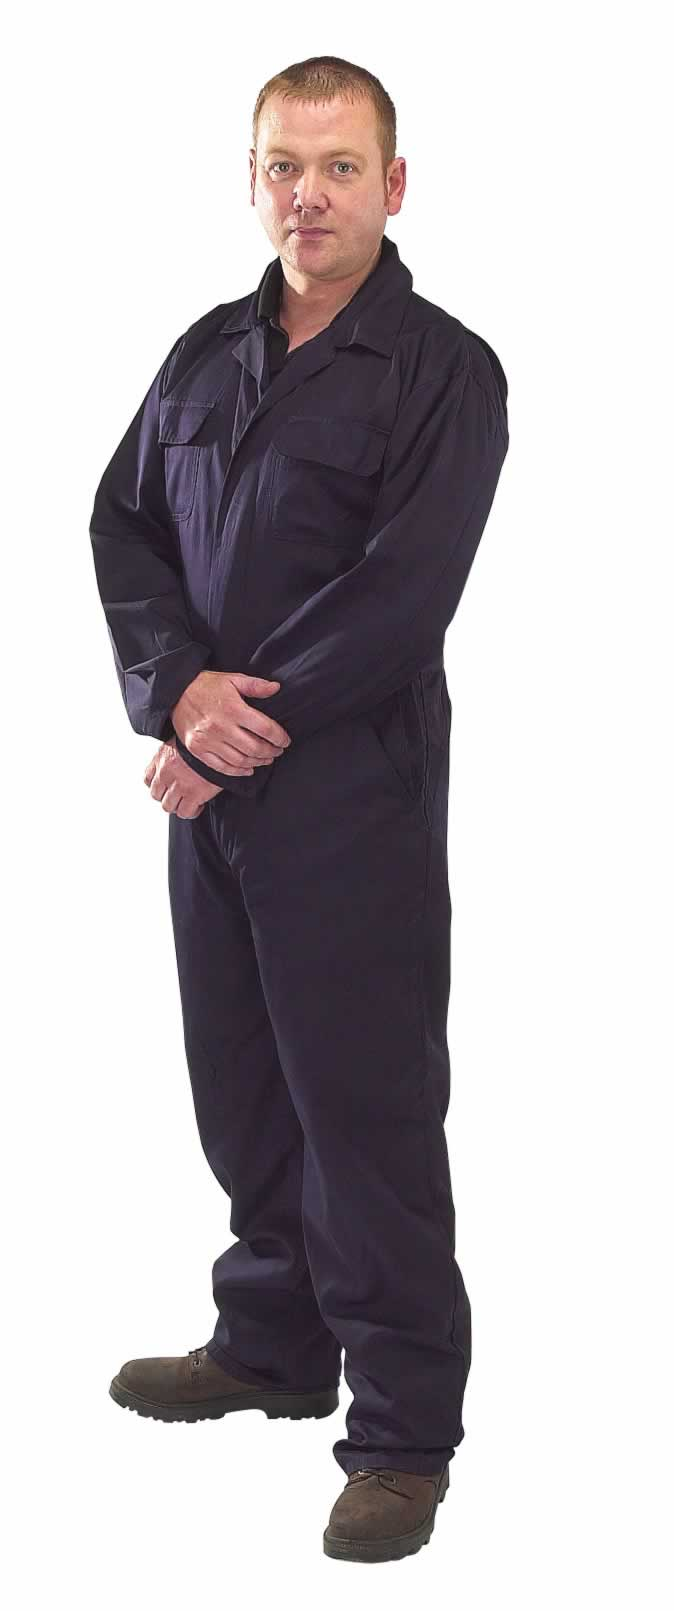 MEDIUM SIZED BOILER SUIT